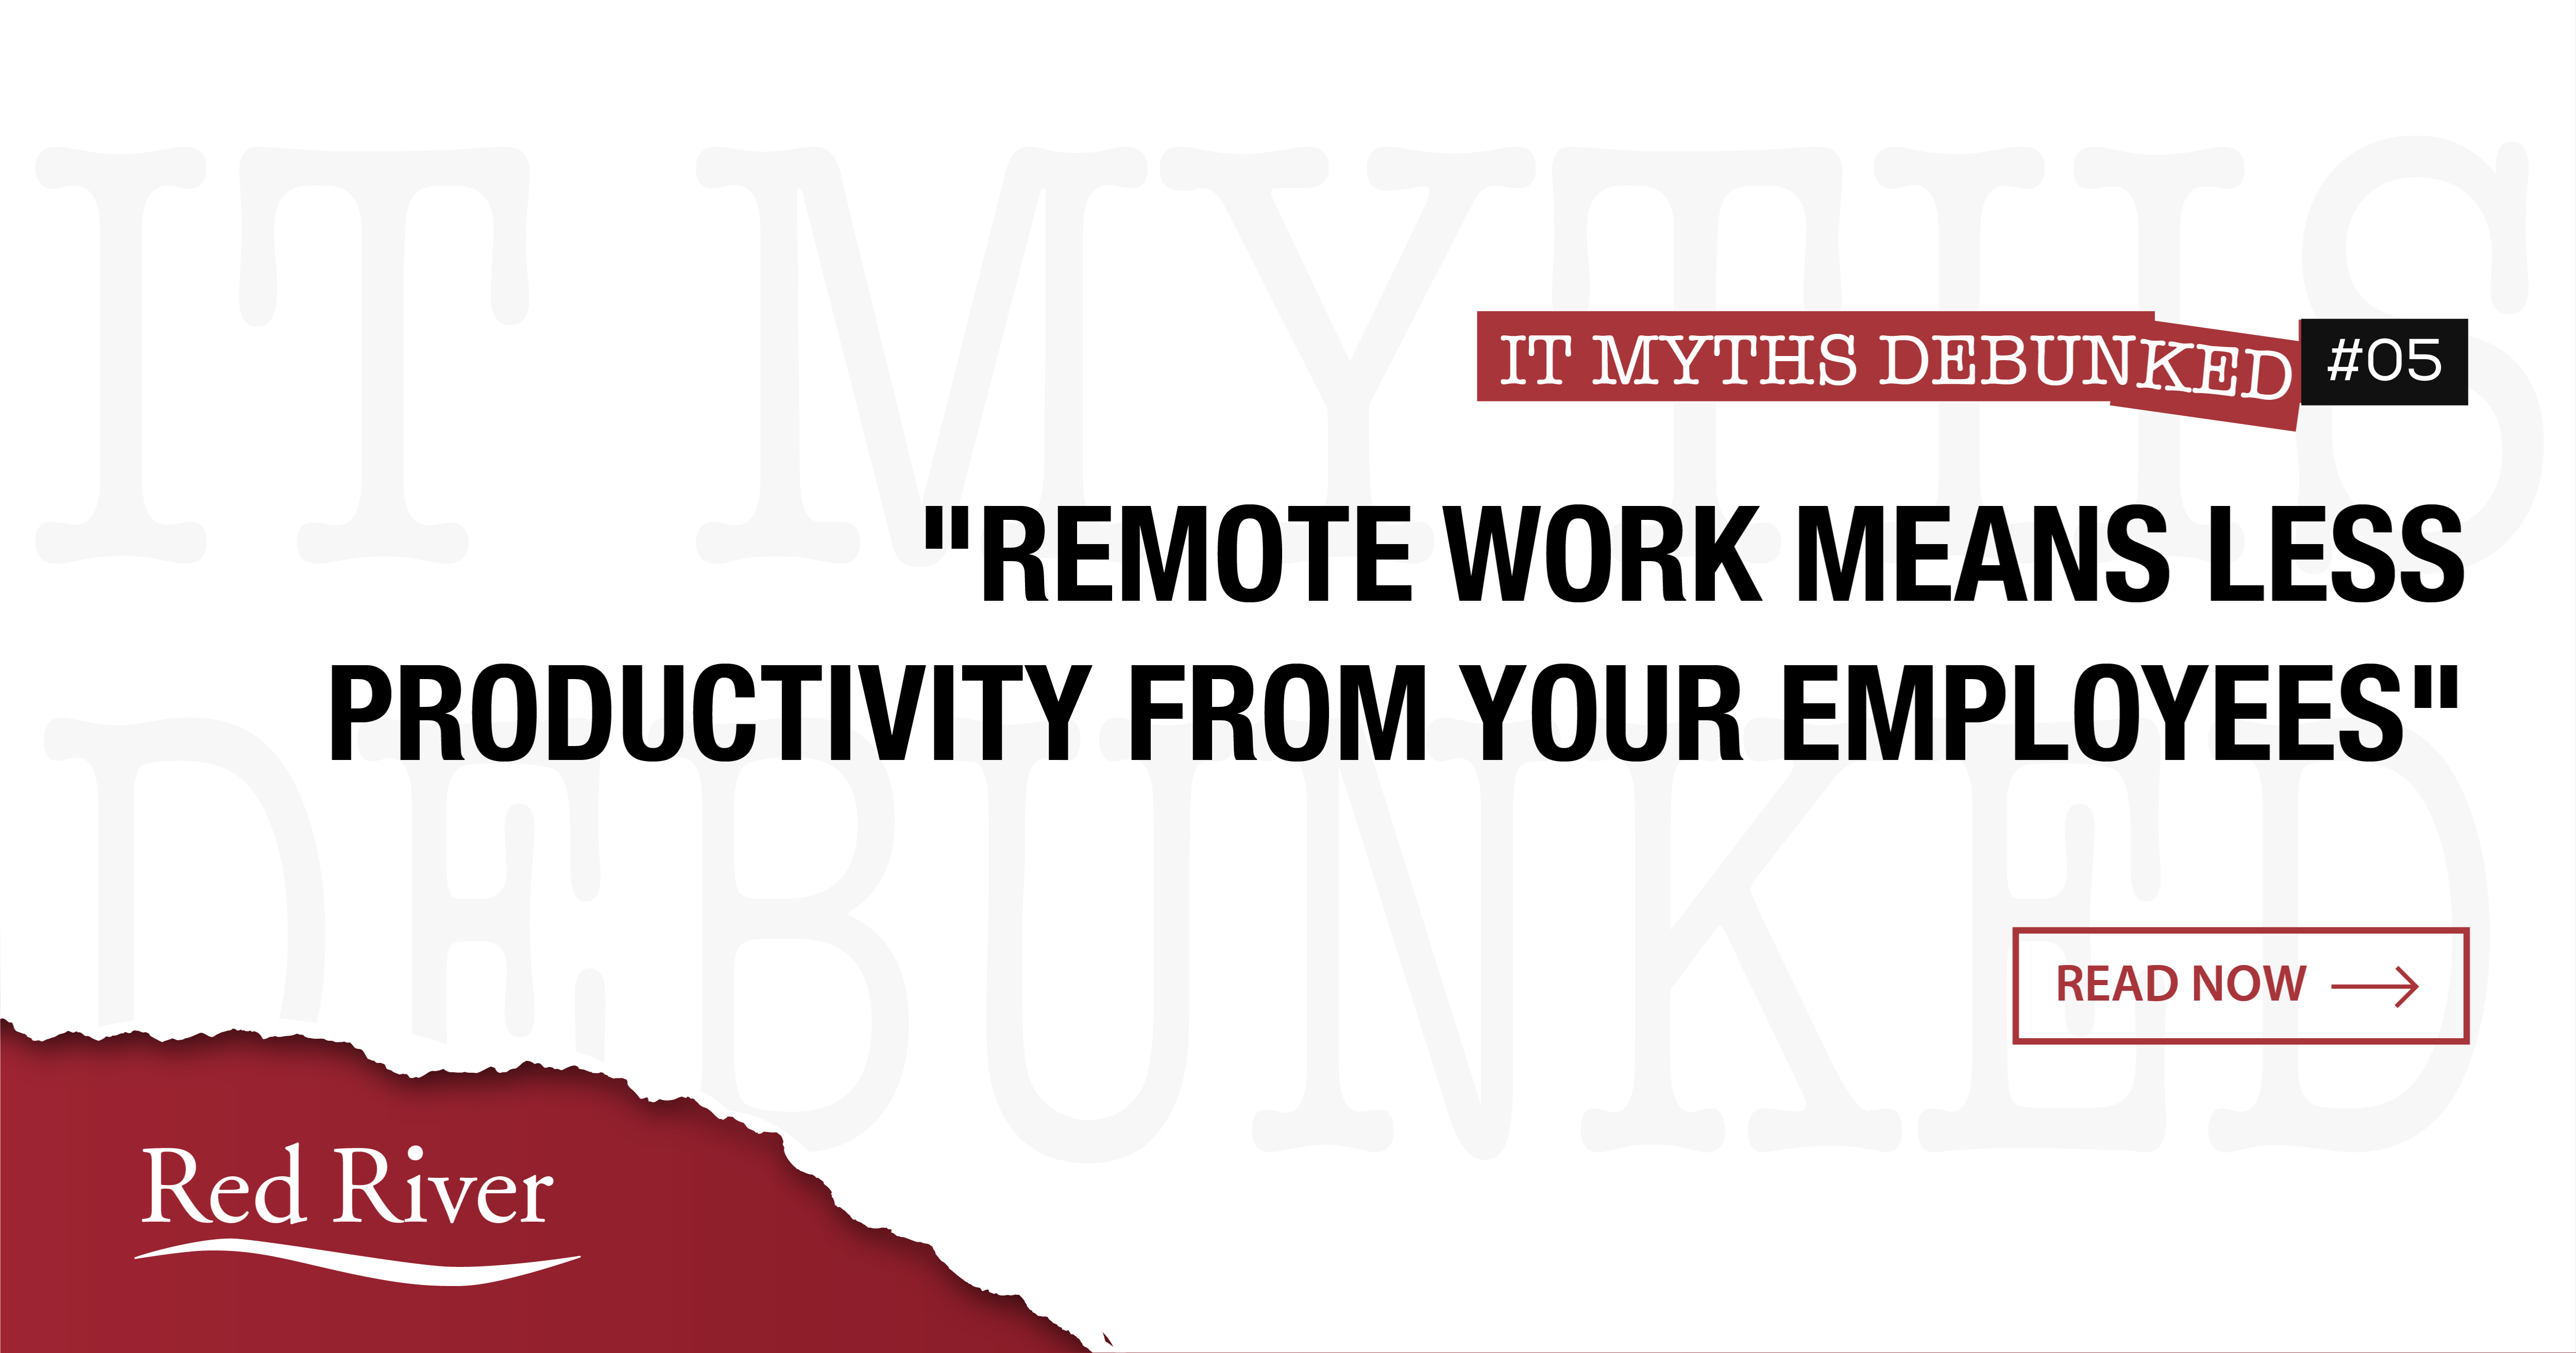 Debunking the Remote Work Unproductivity Myth